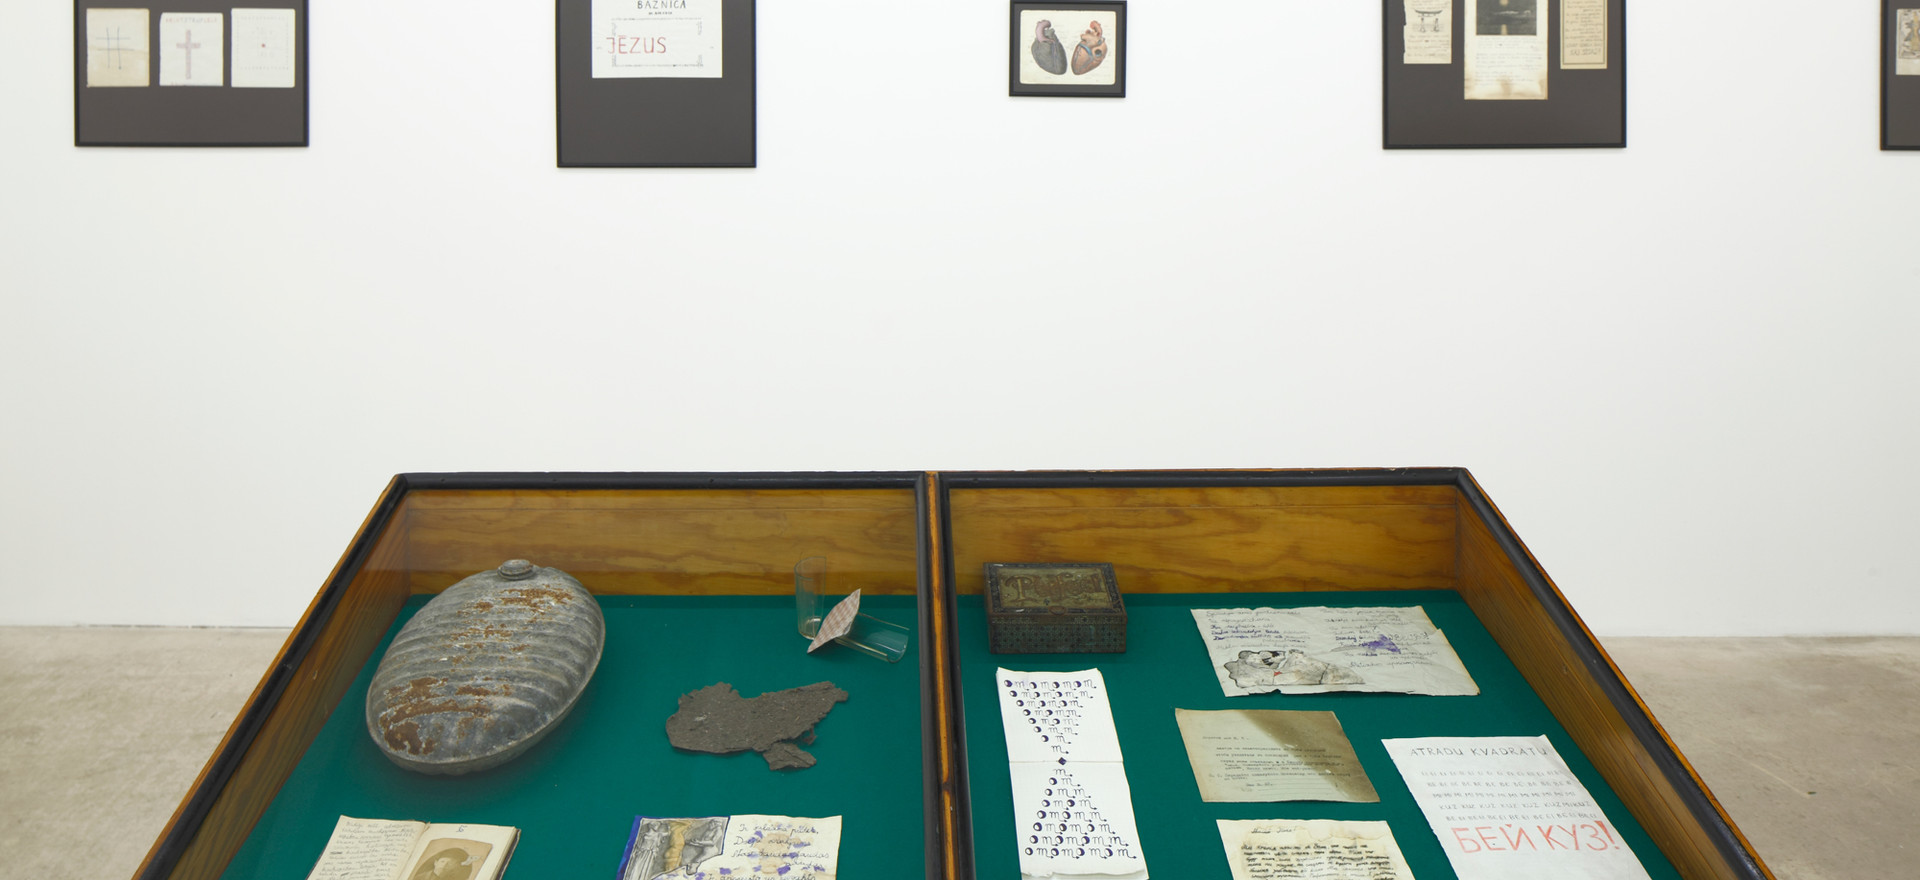 St Petersburg period (1906 - 1917)  Set of personal belongings, notebooks and poem sketches attributed to St. Petersburg period (1906-1917) installed at the exhibition at Kim? contemporary art centre, Riga, 2018. Photo by Ansis Starks.